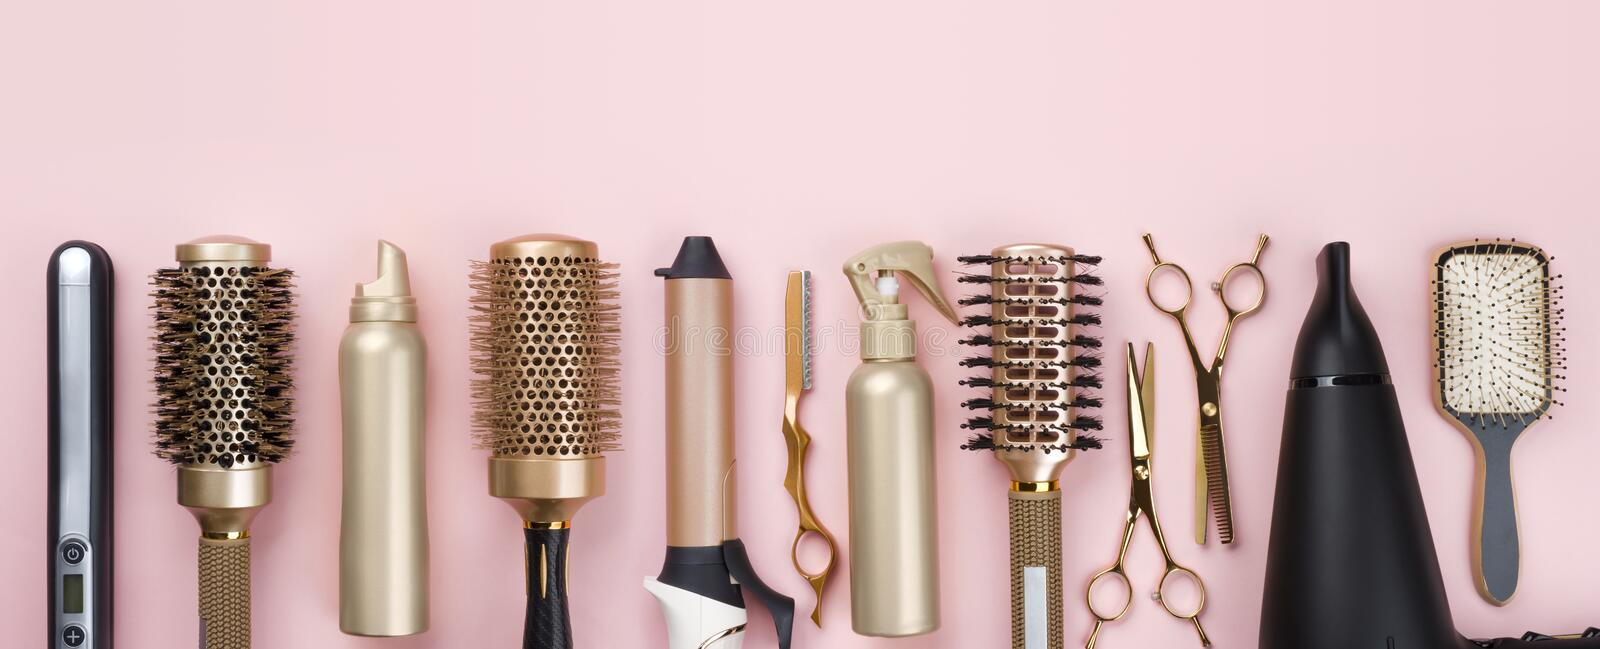 Professional hair dresser tools on pink background with copy space.  royalty free stock images